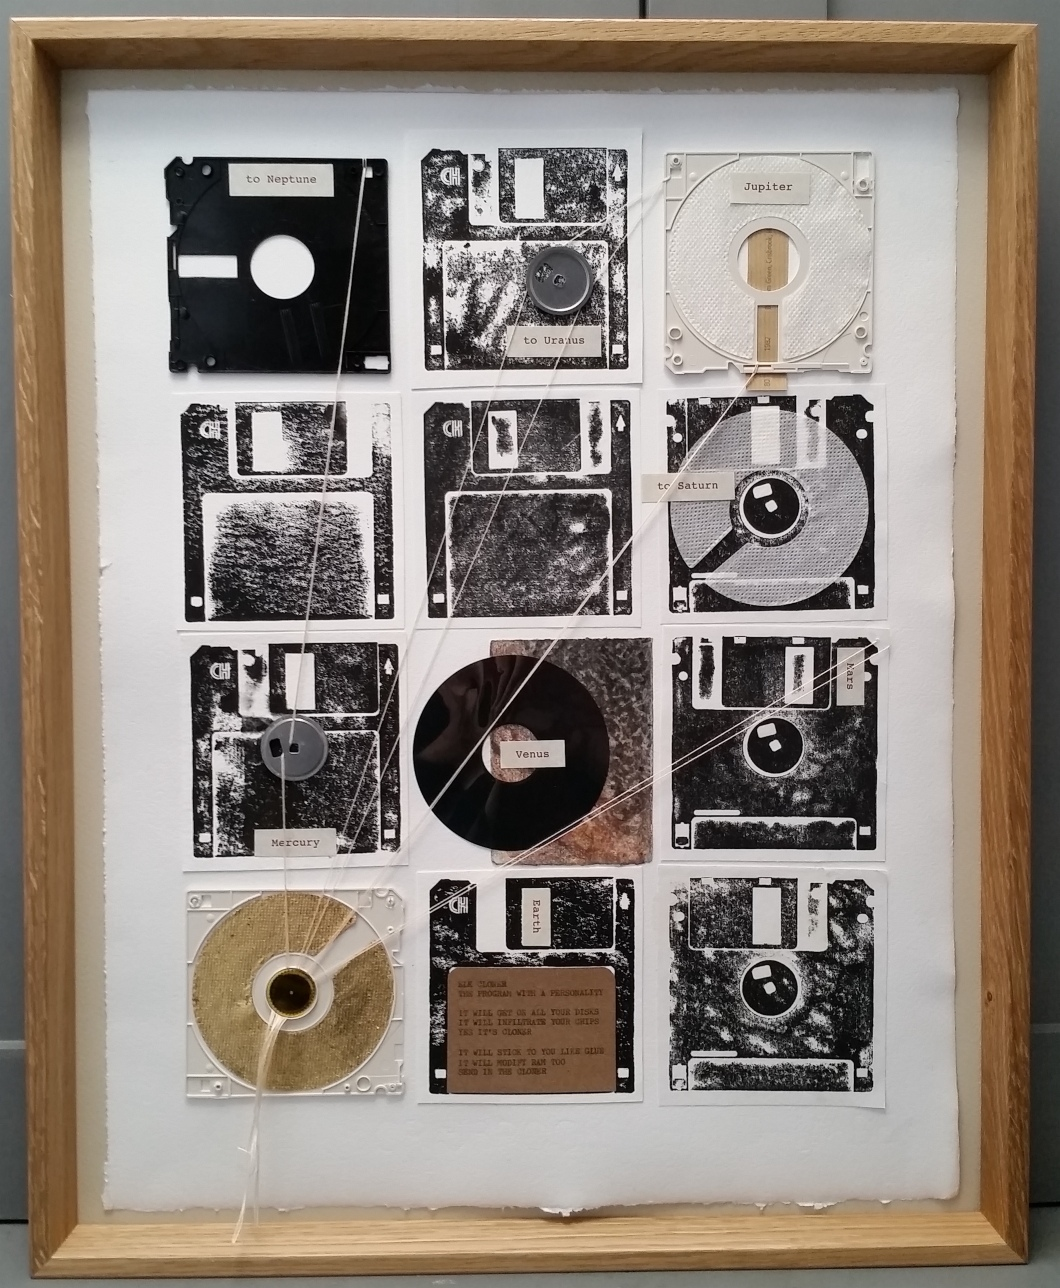 80_1982_Turning Tide_Helen Stone_paper and floppy disk montage 1